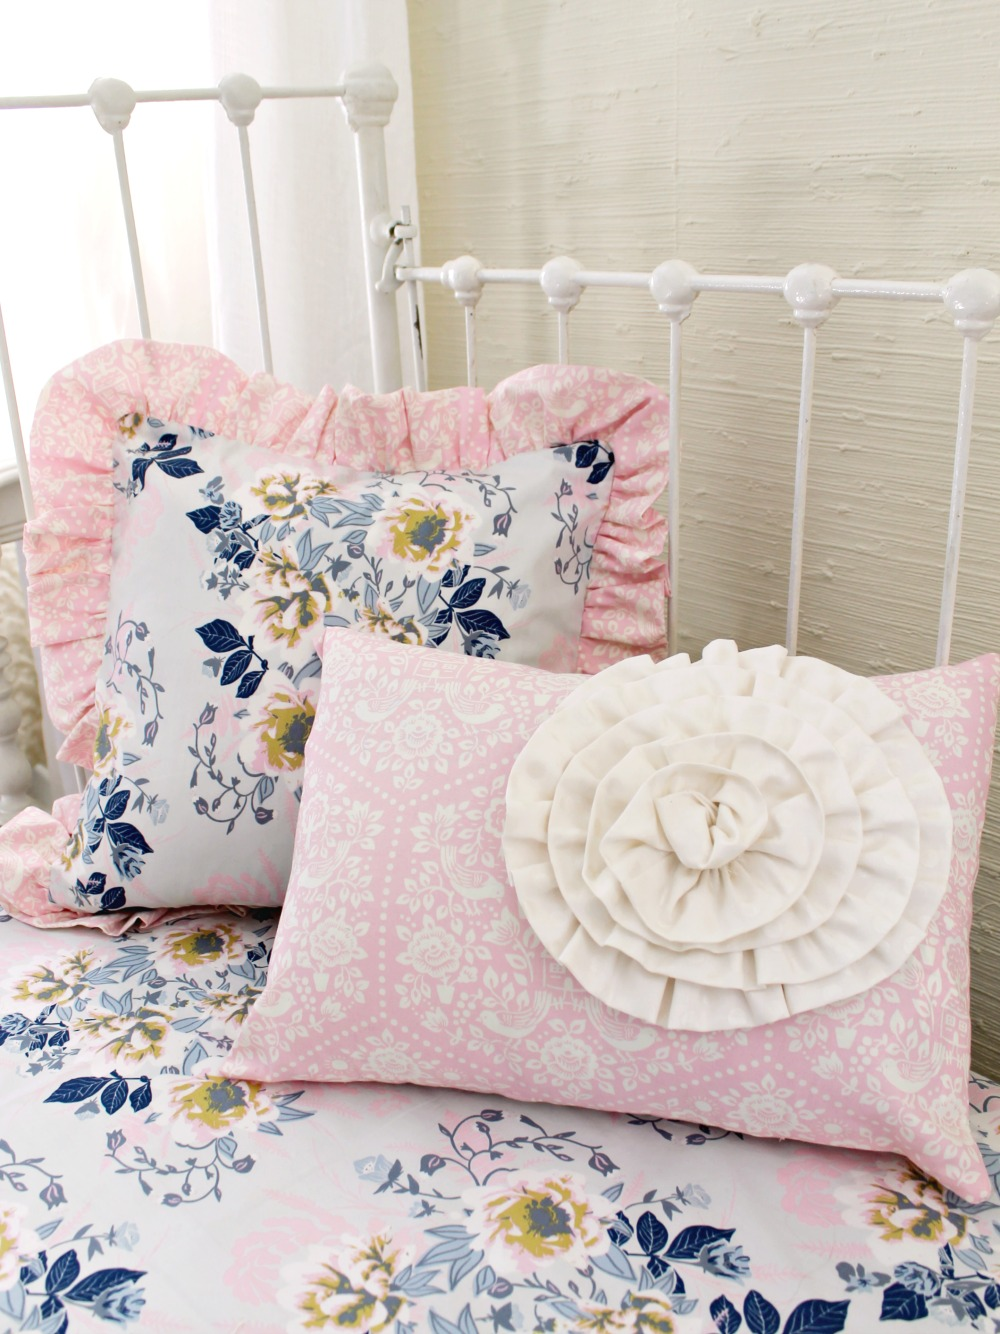 Ethereal Lullaby Baby Bedding Set For A Pink Gray And